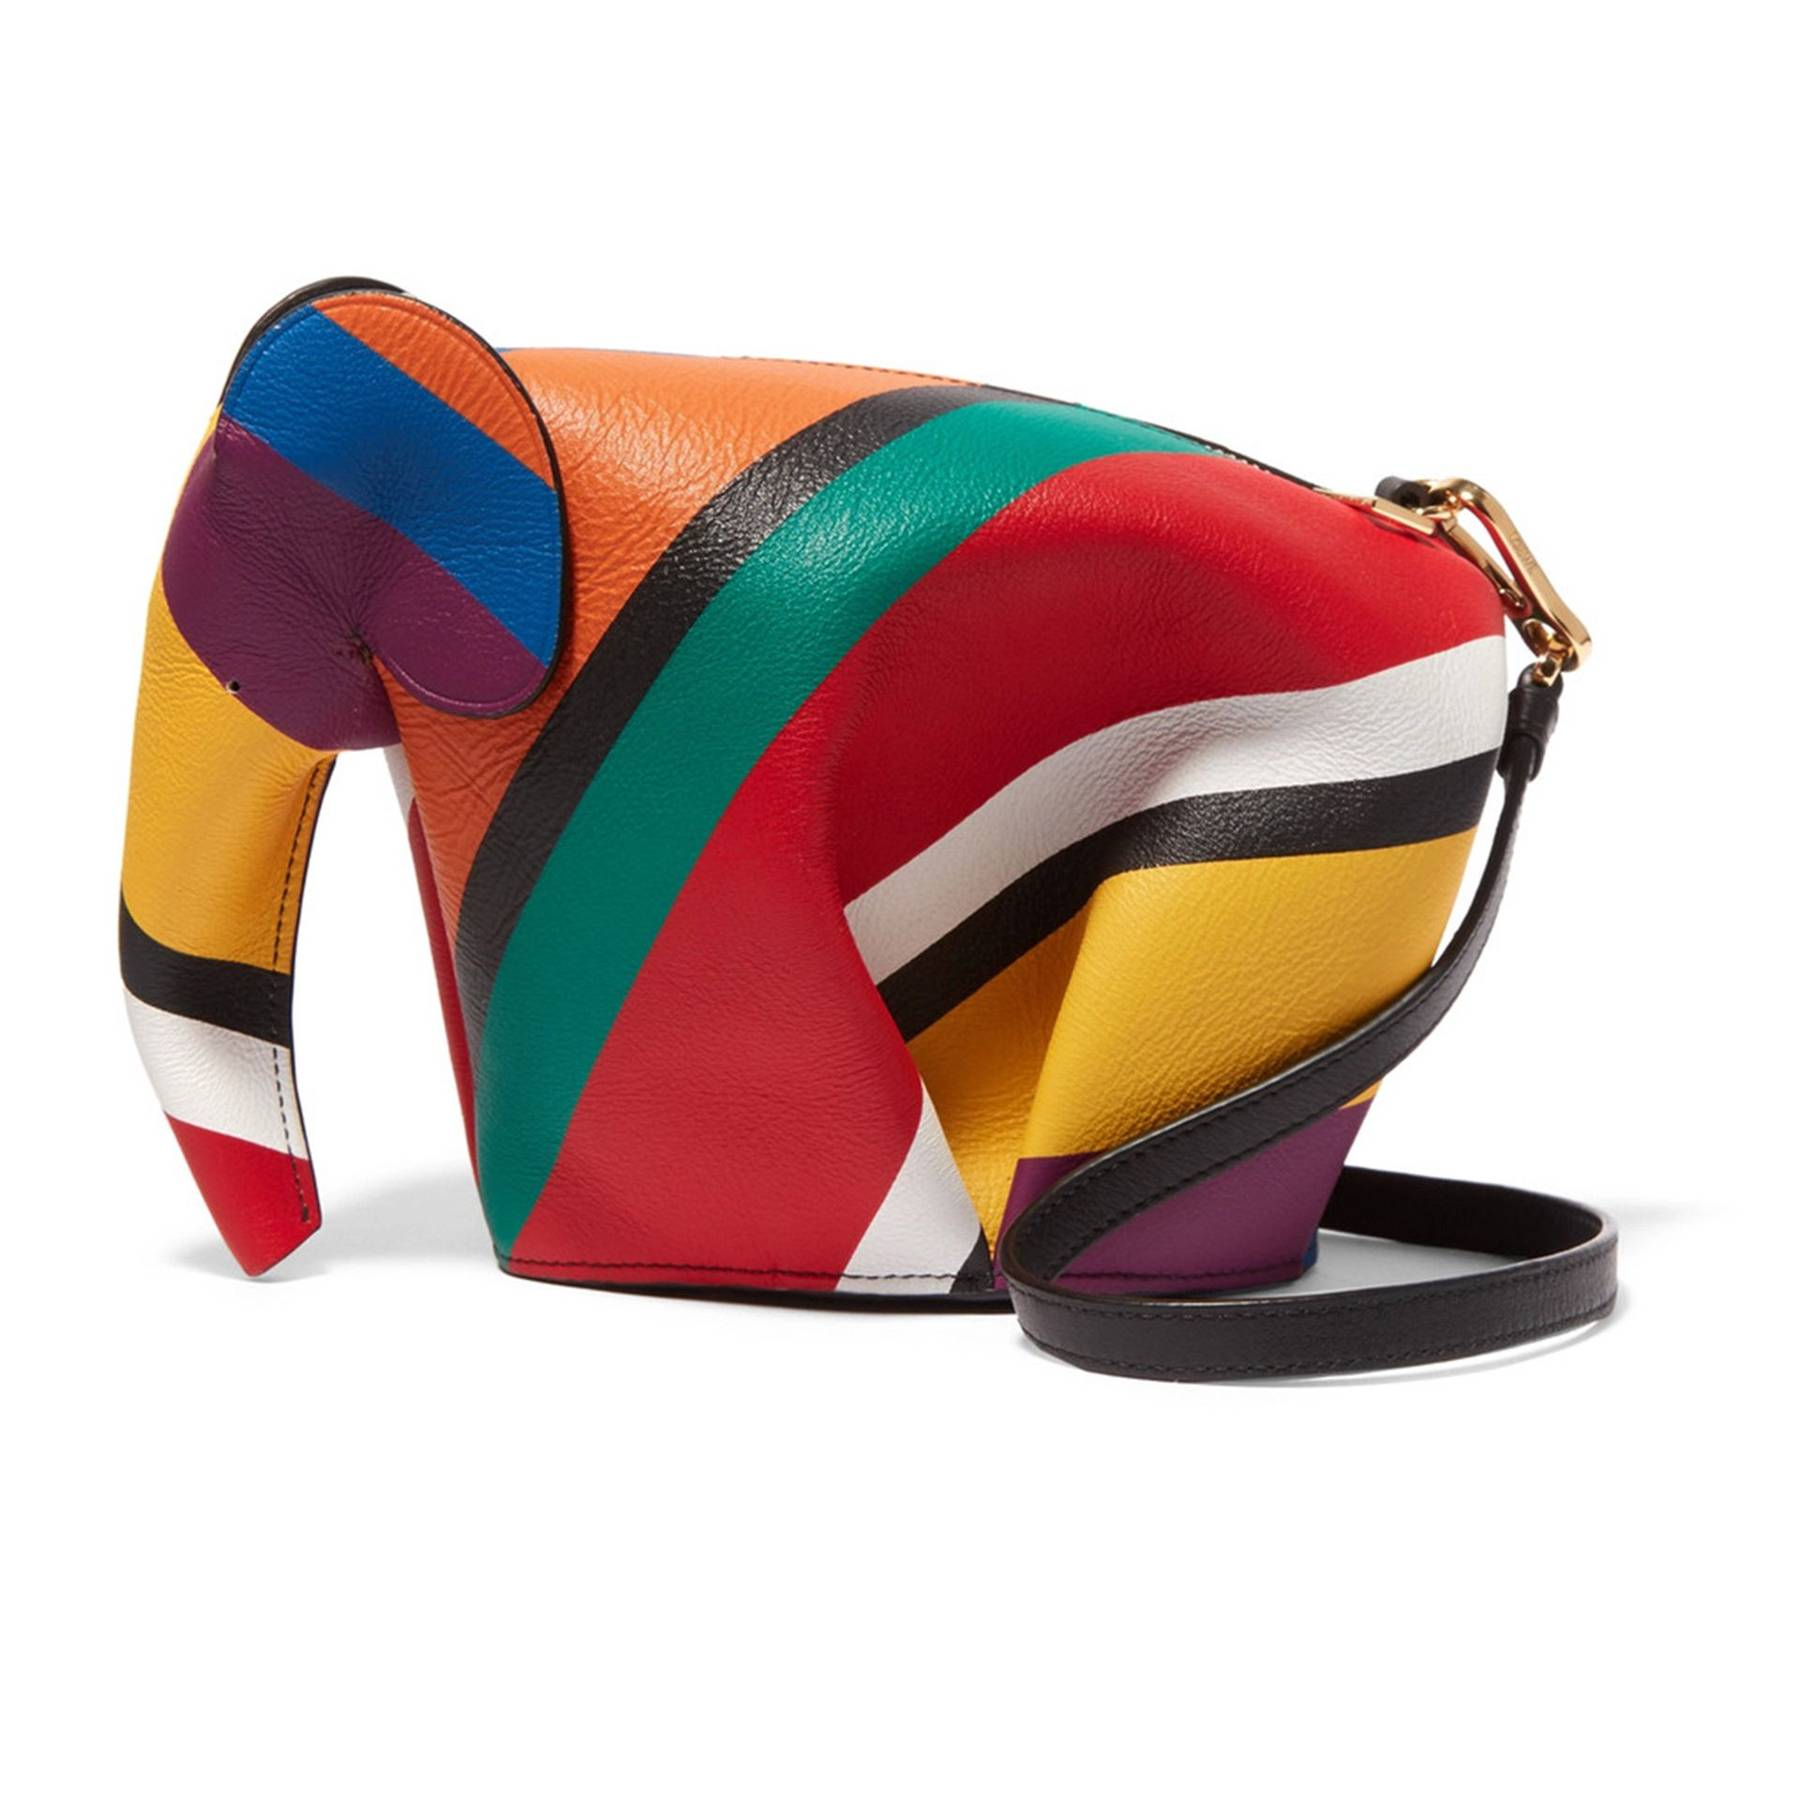 Elephant bags jewellery and fashion: Loewe, ASOS, Urban Outfitters | Glamour UK